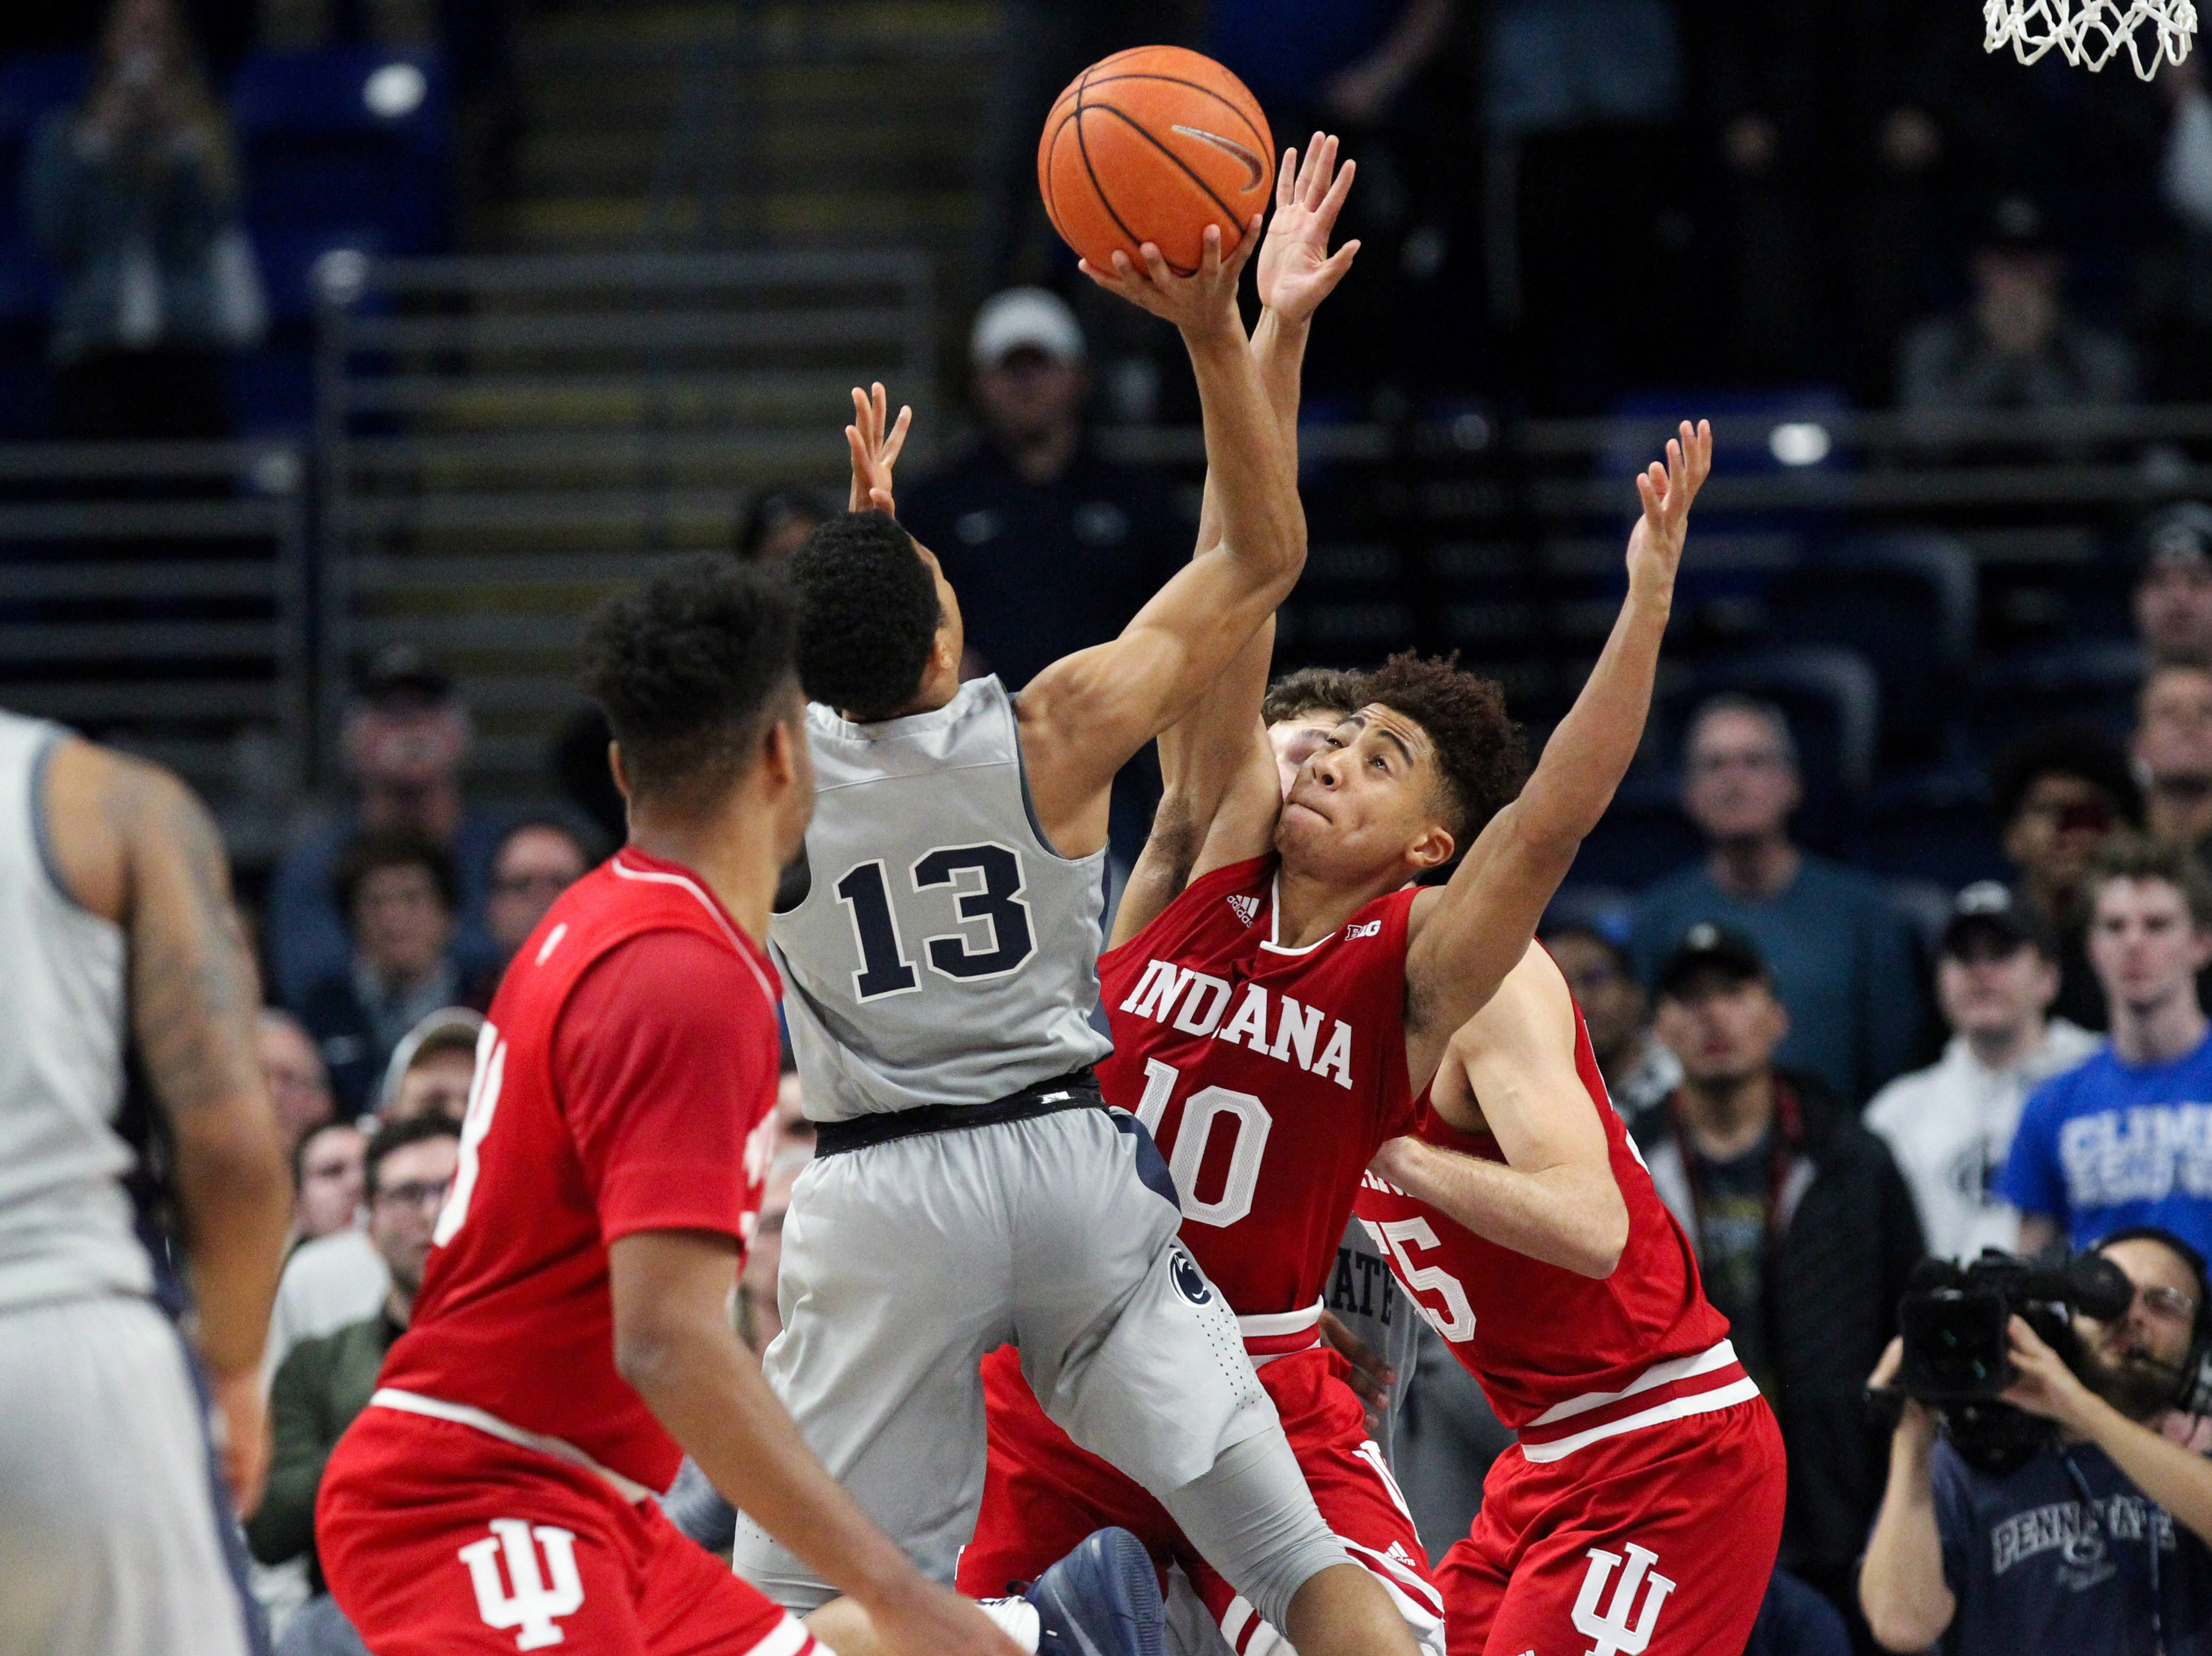 Dec 4, 2018; University Park, PA, USA; Indiana Hoosiers guard Rob Phinisee (10) pressures Penn State Nittany Lions guard Rasir Bolton (13) during the second half at Bryce Jordan Center. Indiana defeated Penn State 64-62. Mandatory Credit: Matthew O'Haren-USA TODAY Sports